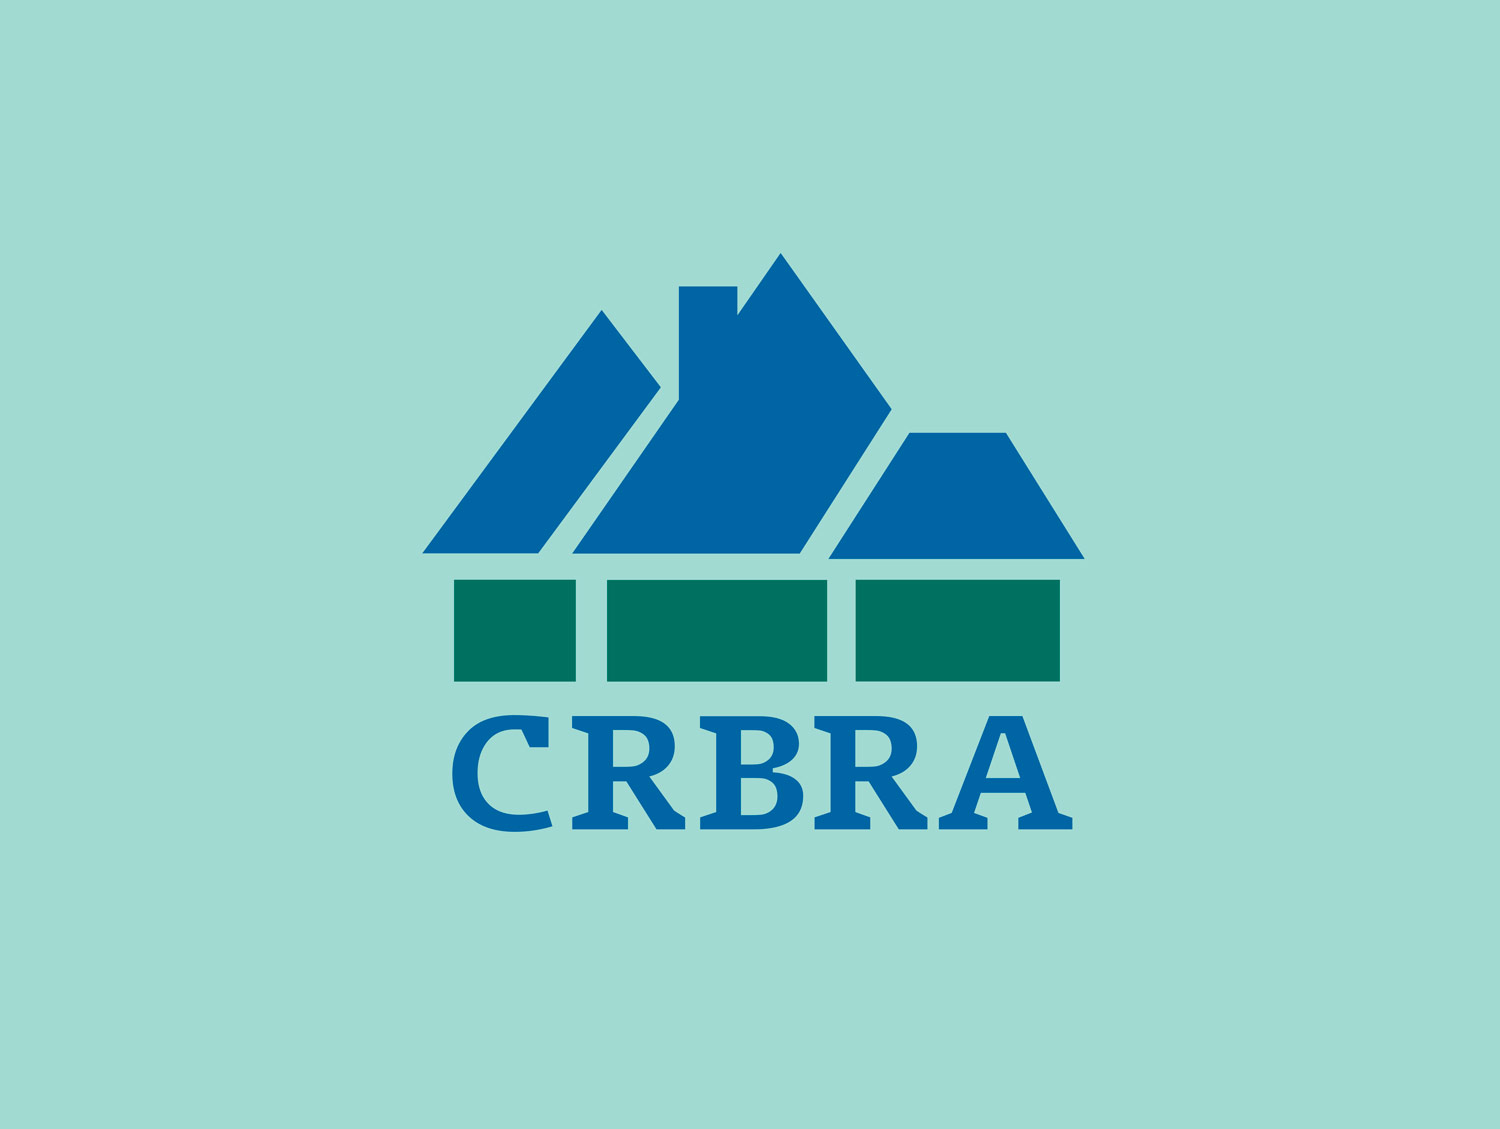 crbra logo design by mike hosier